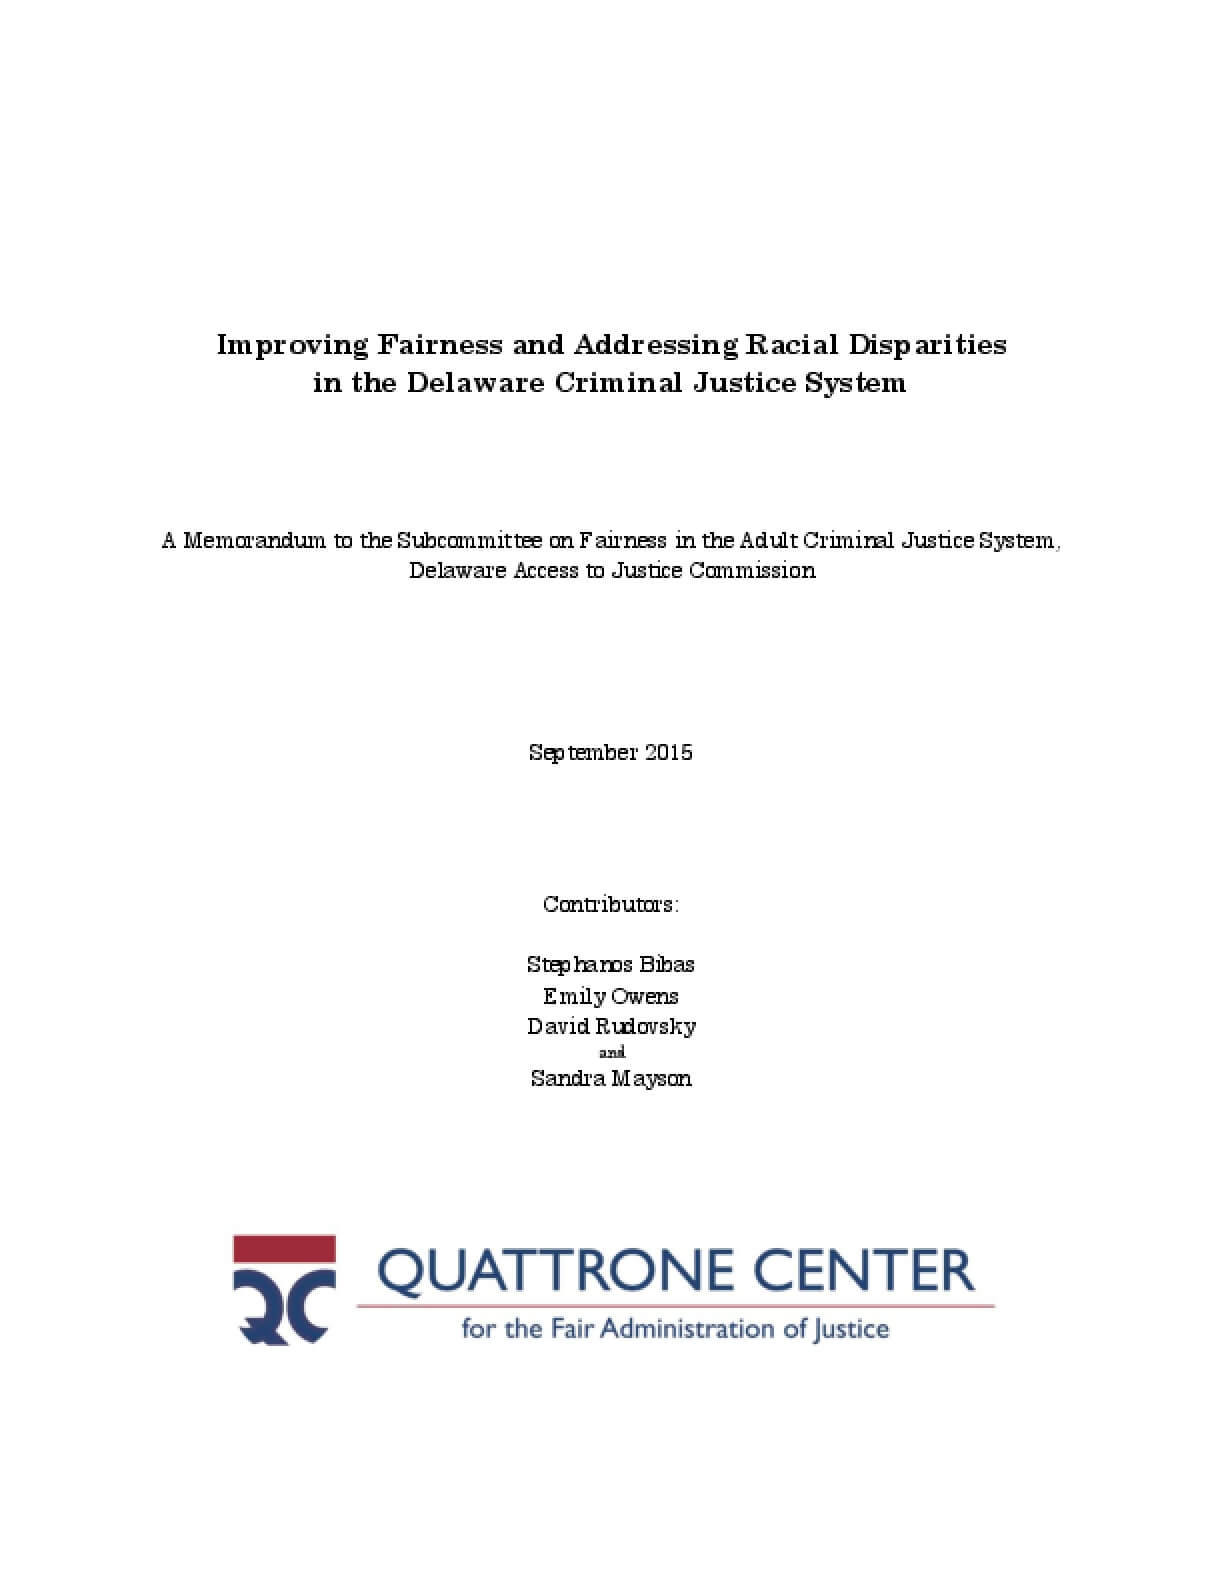 Improving Fairness and Addressing Racial Disparities in the Delaware Criminal Justice System